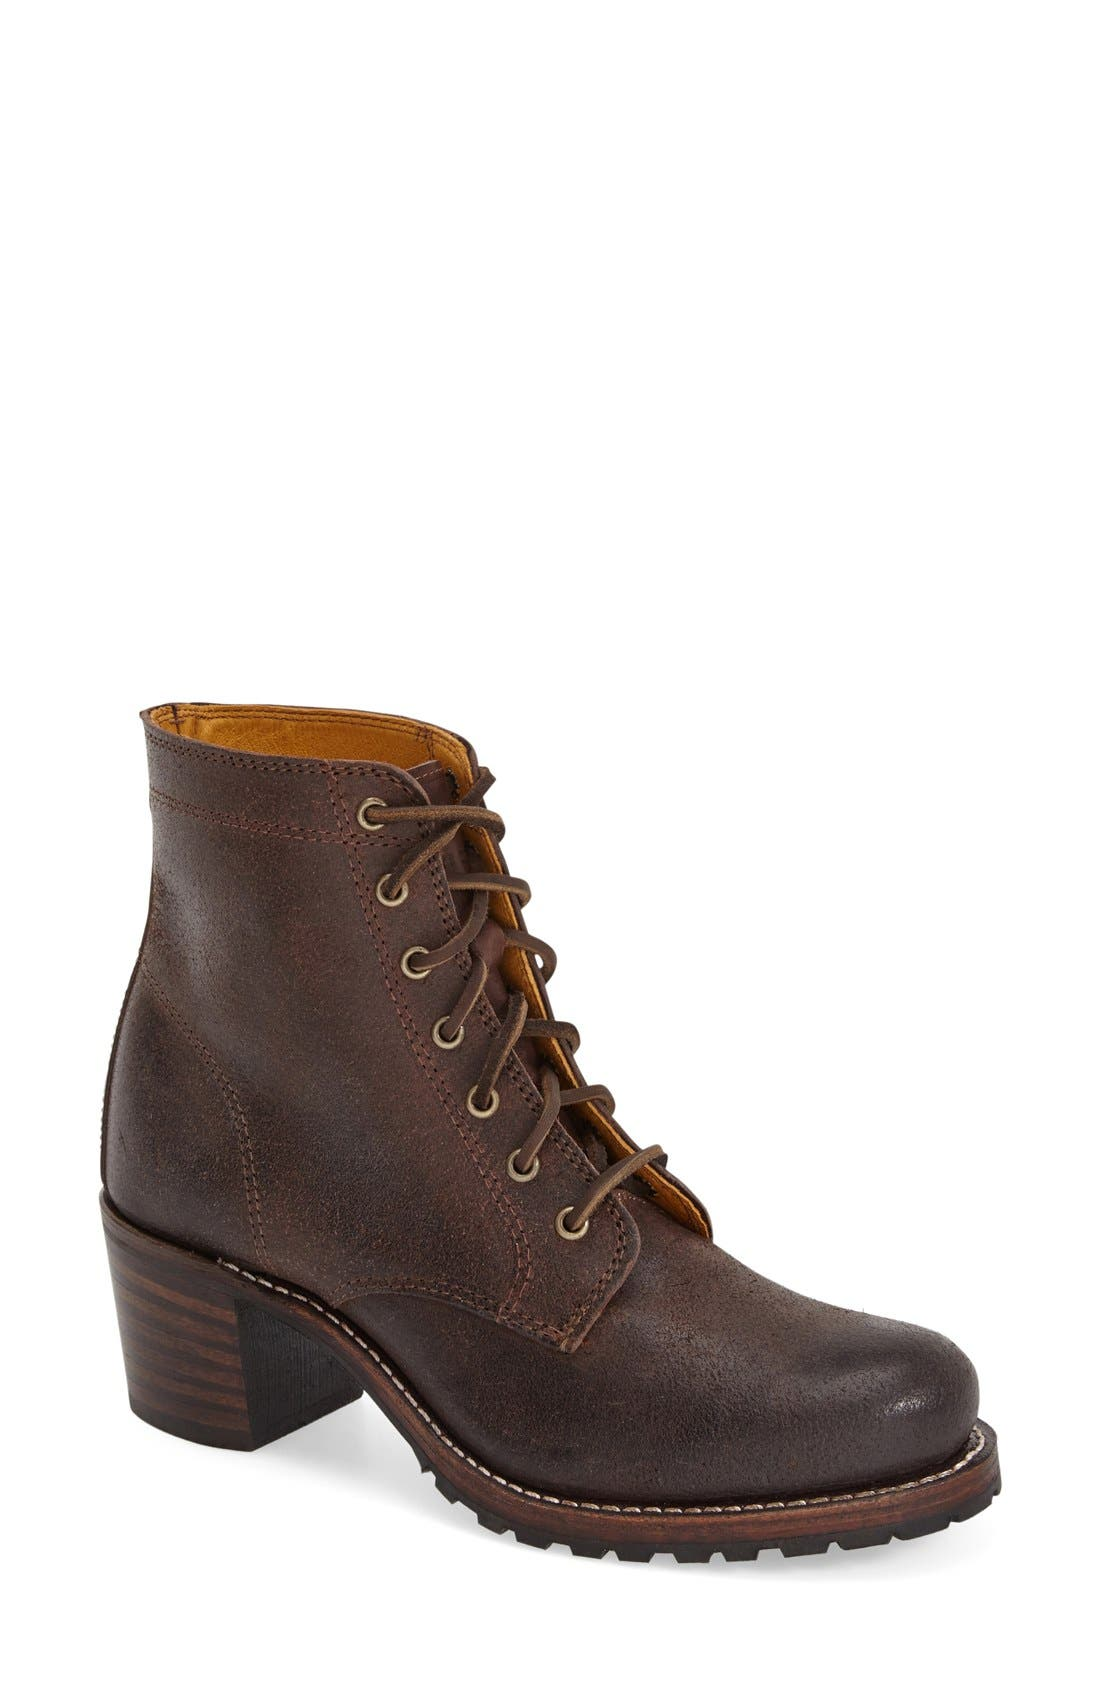 FRYE Sabrina Distressed Lace-Up Boots in Dark Brown Suede